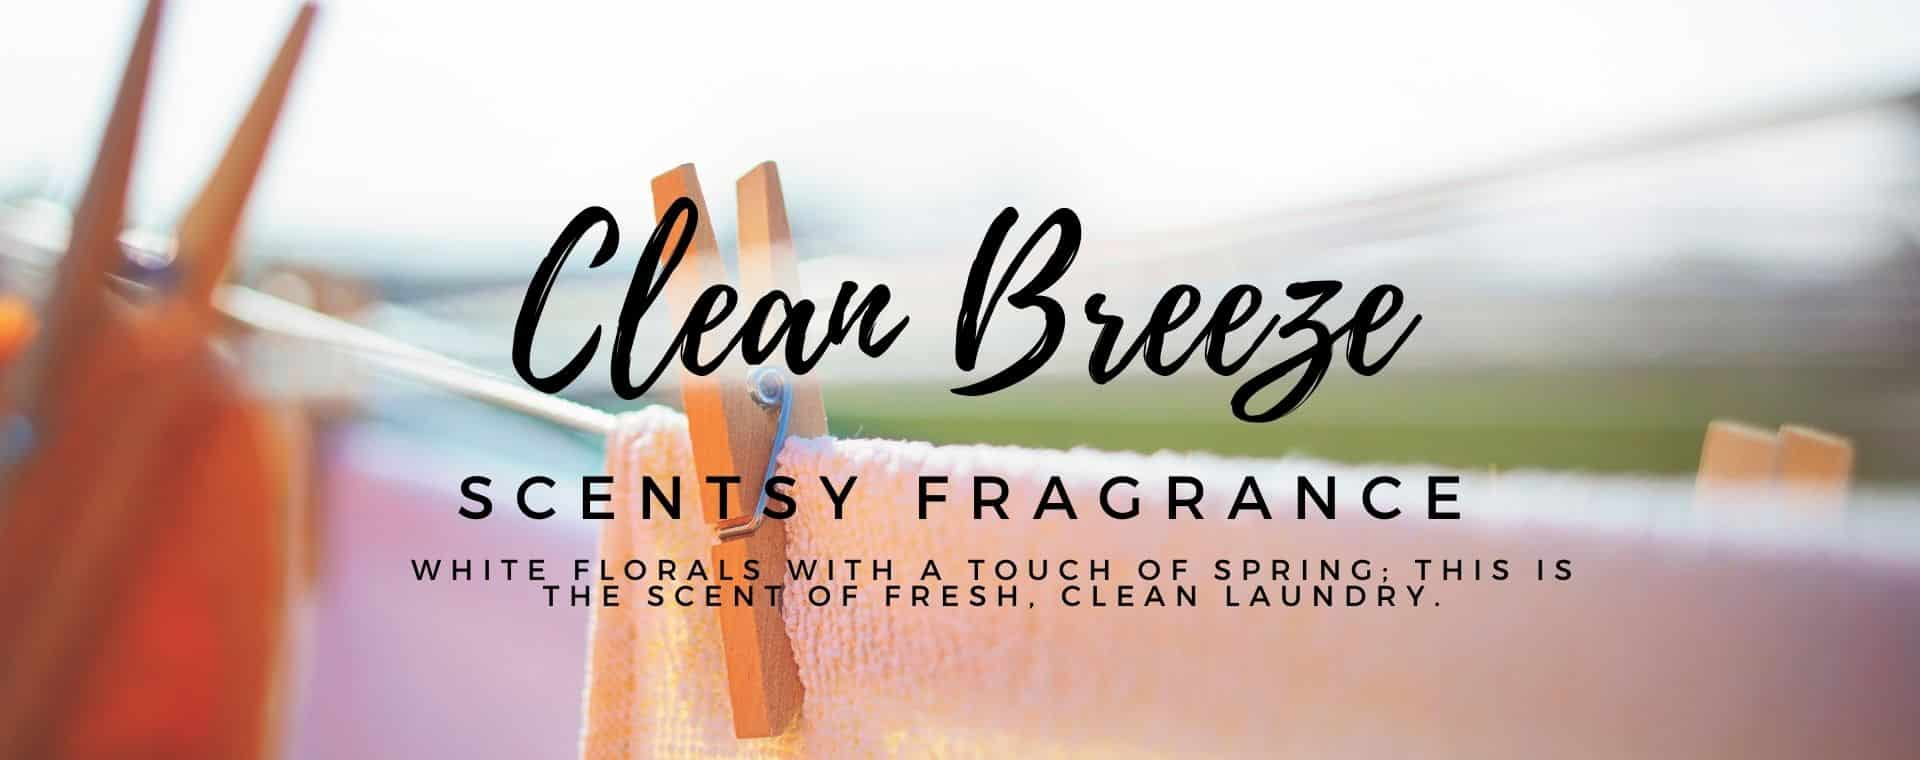 Clean Breeze Scentsy Fragrance